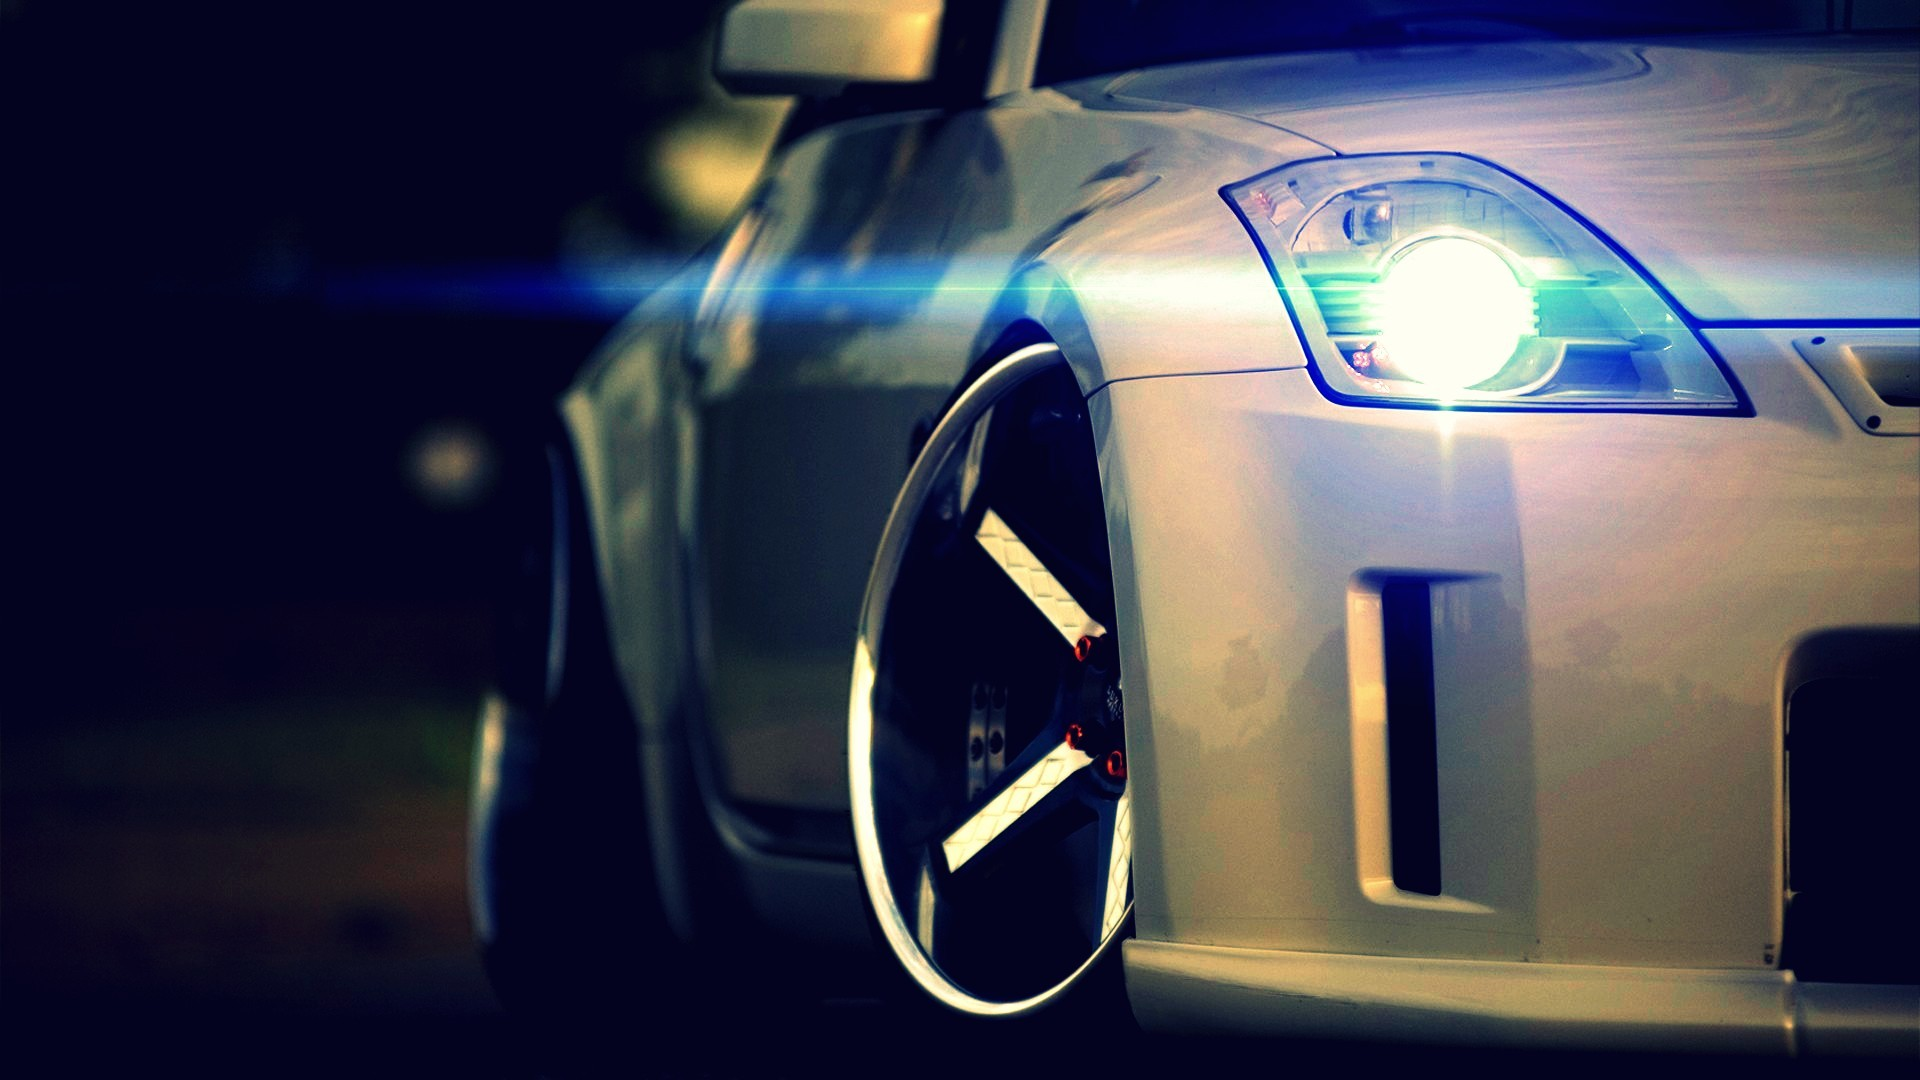 » Wallpapers HD [Autos, Coches]